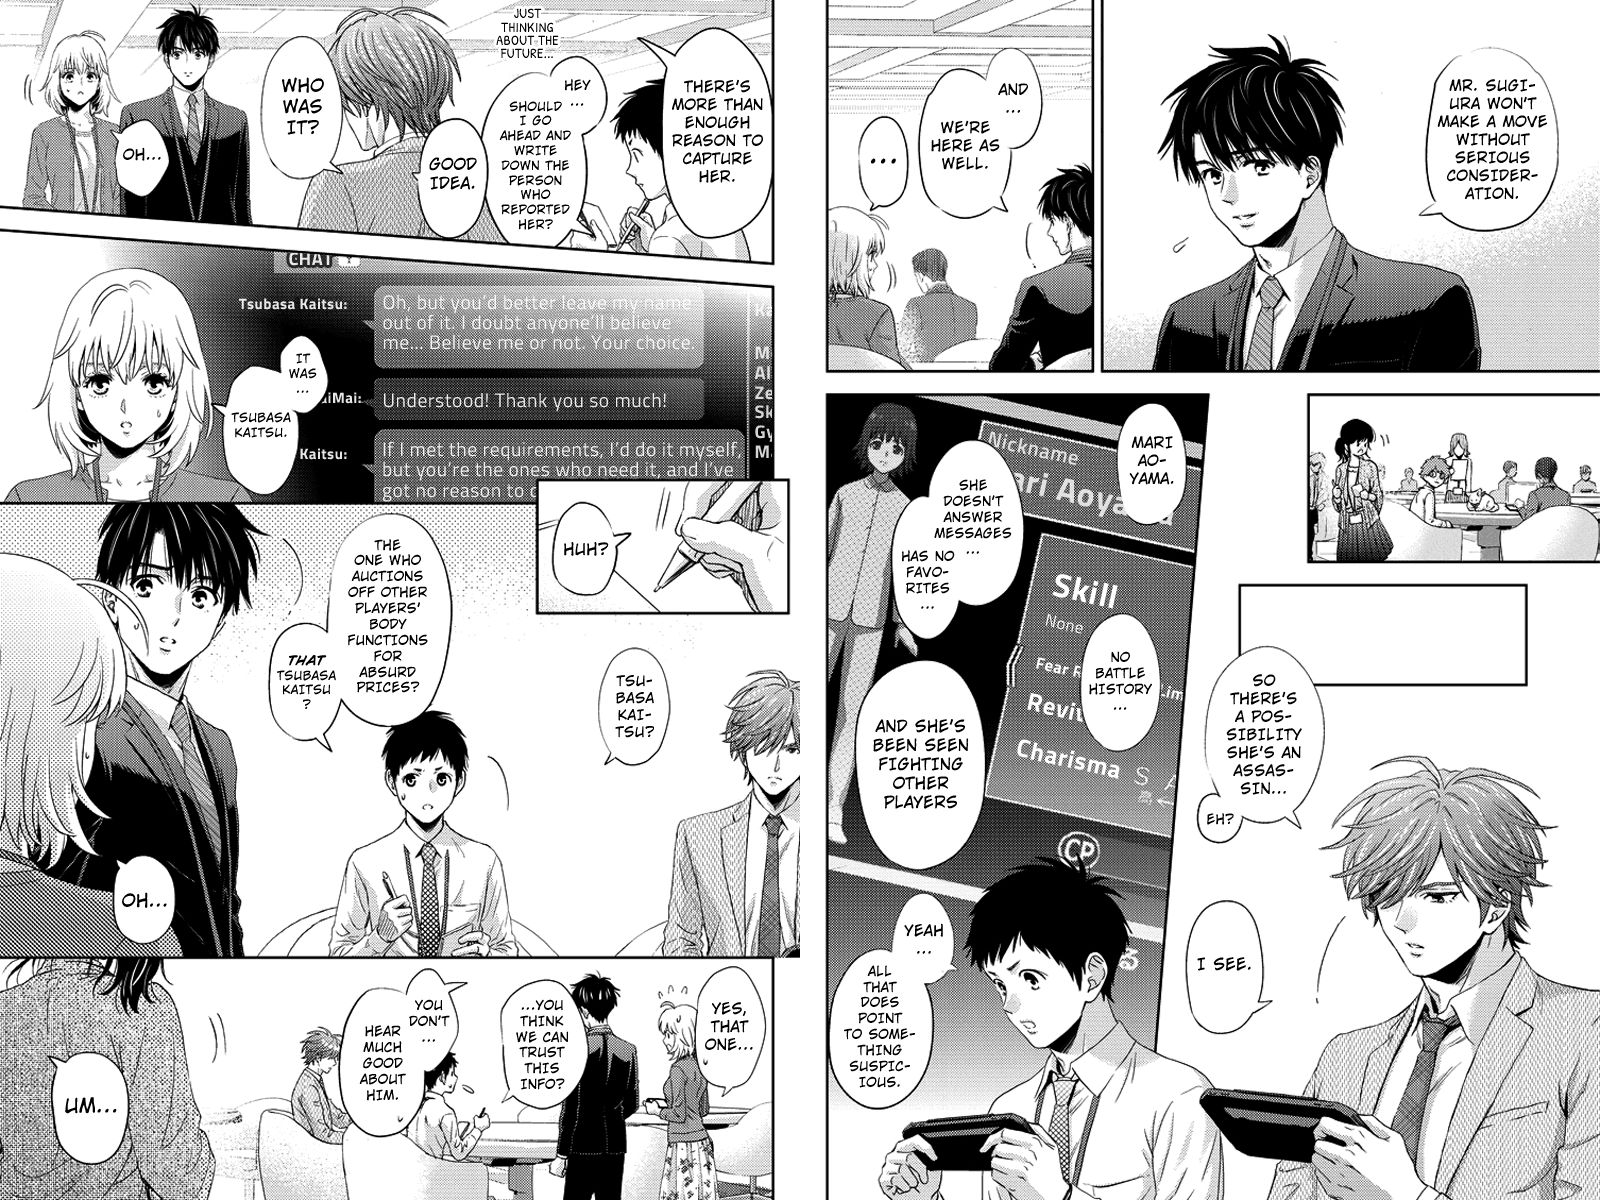 Online - The Comic - Chapter 71